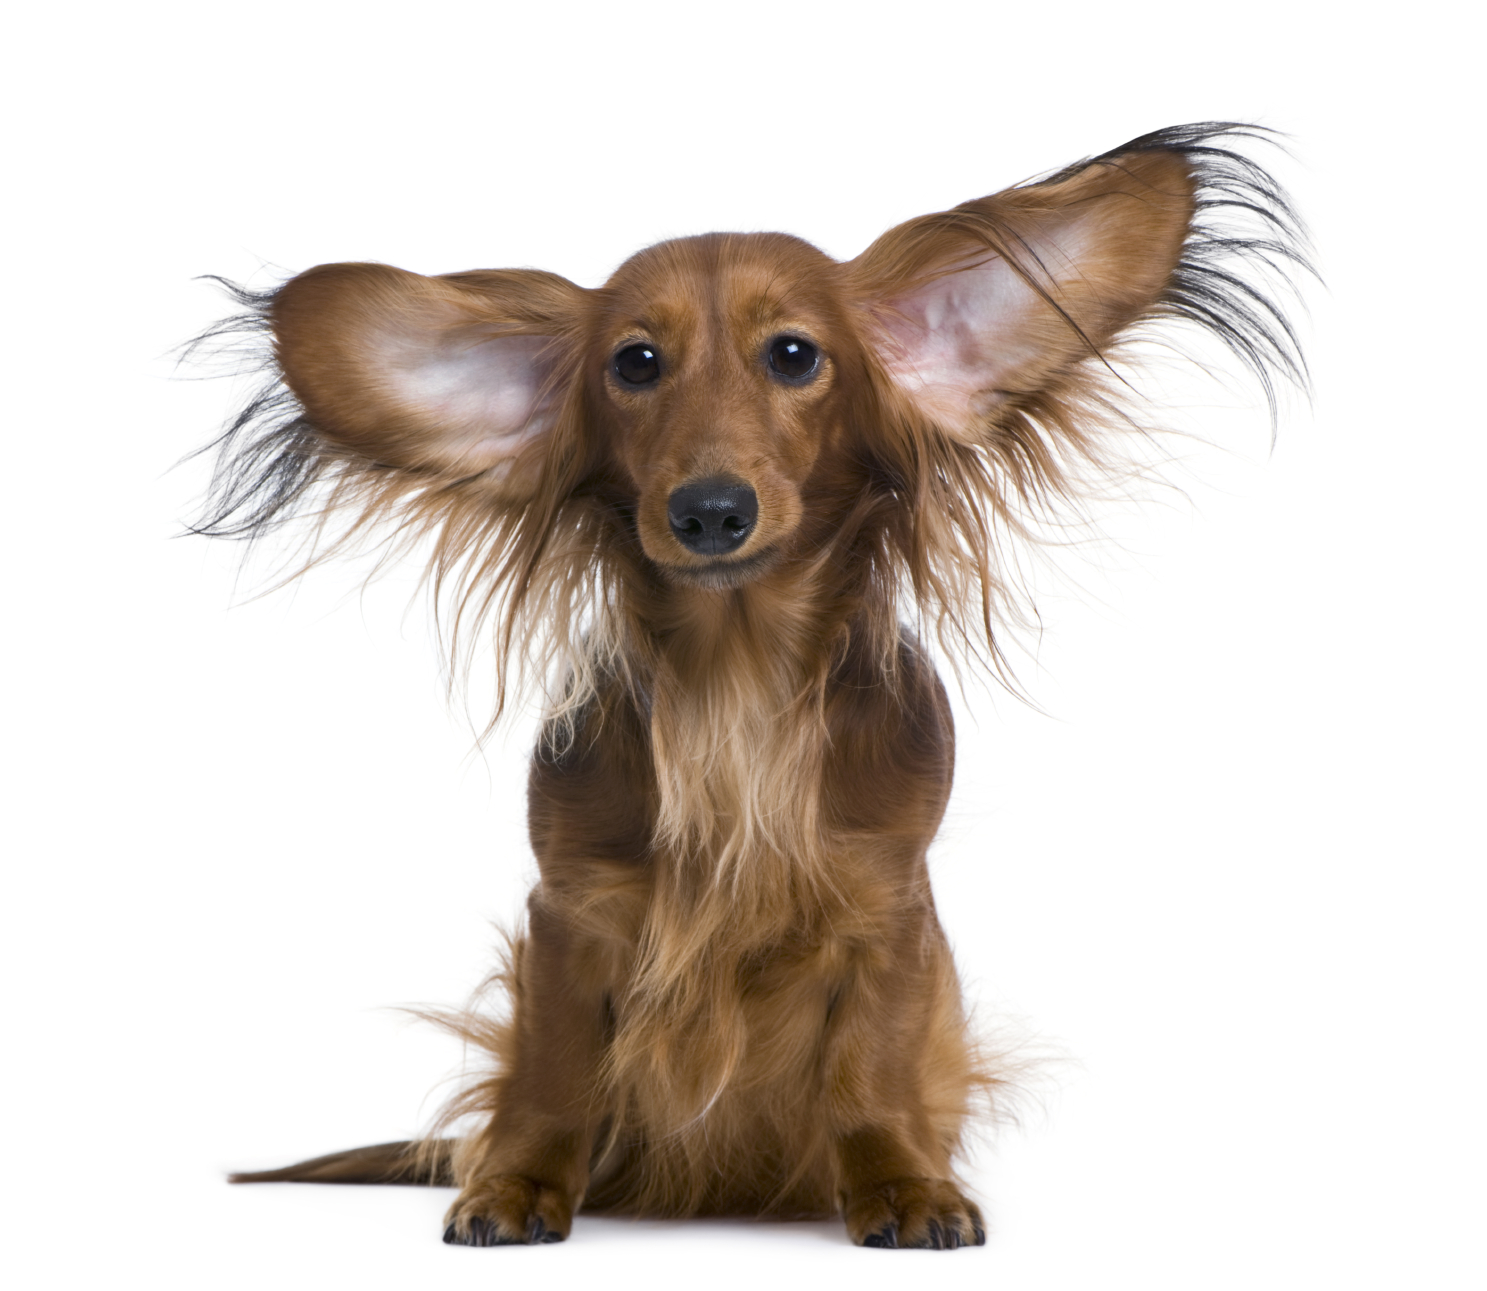 Ear Infections Symptoms in Pets